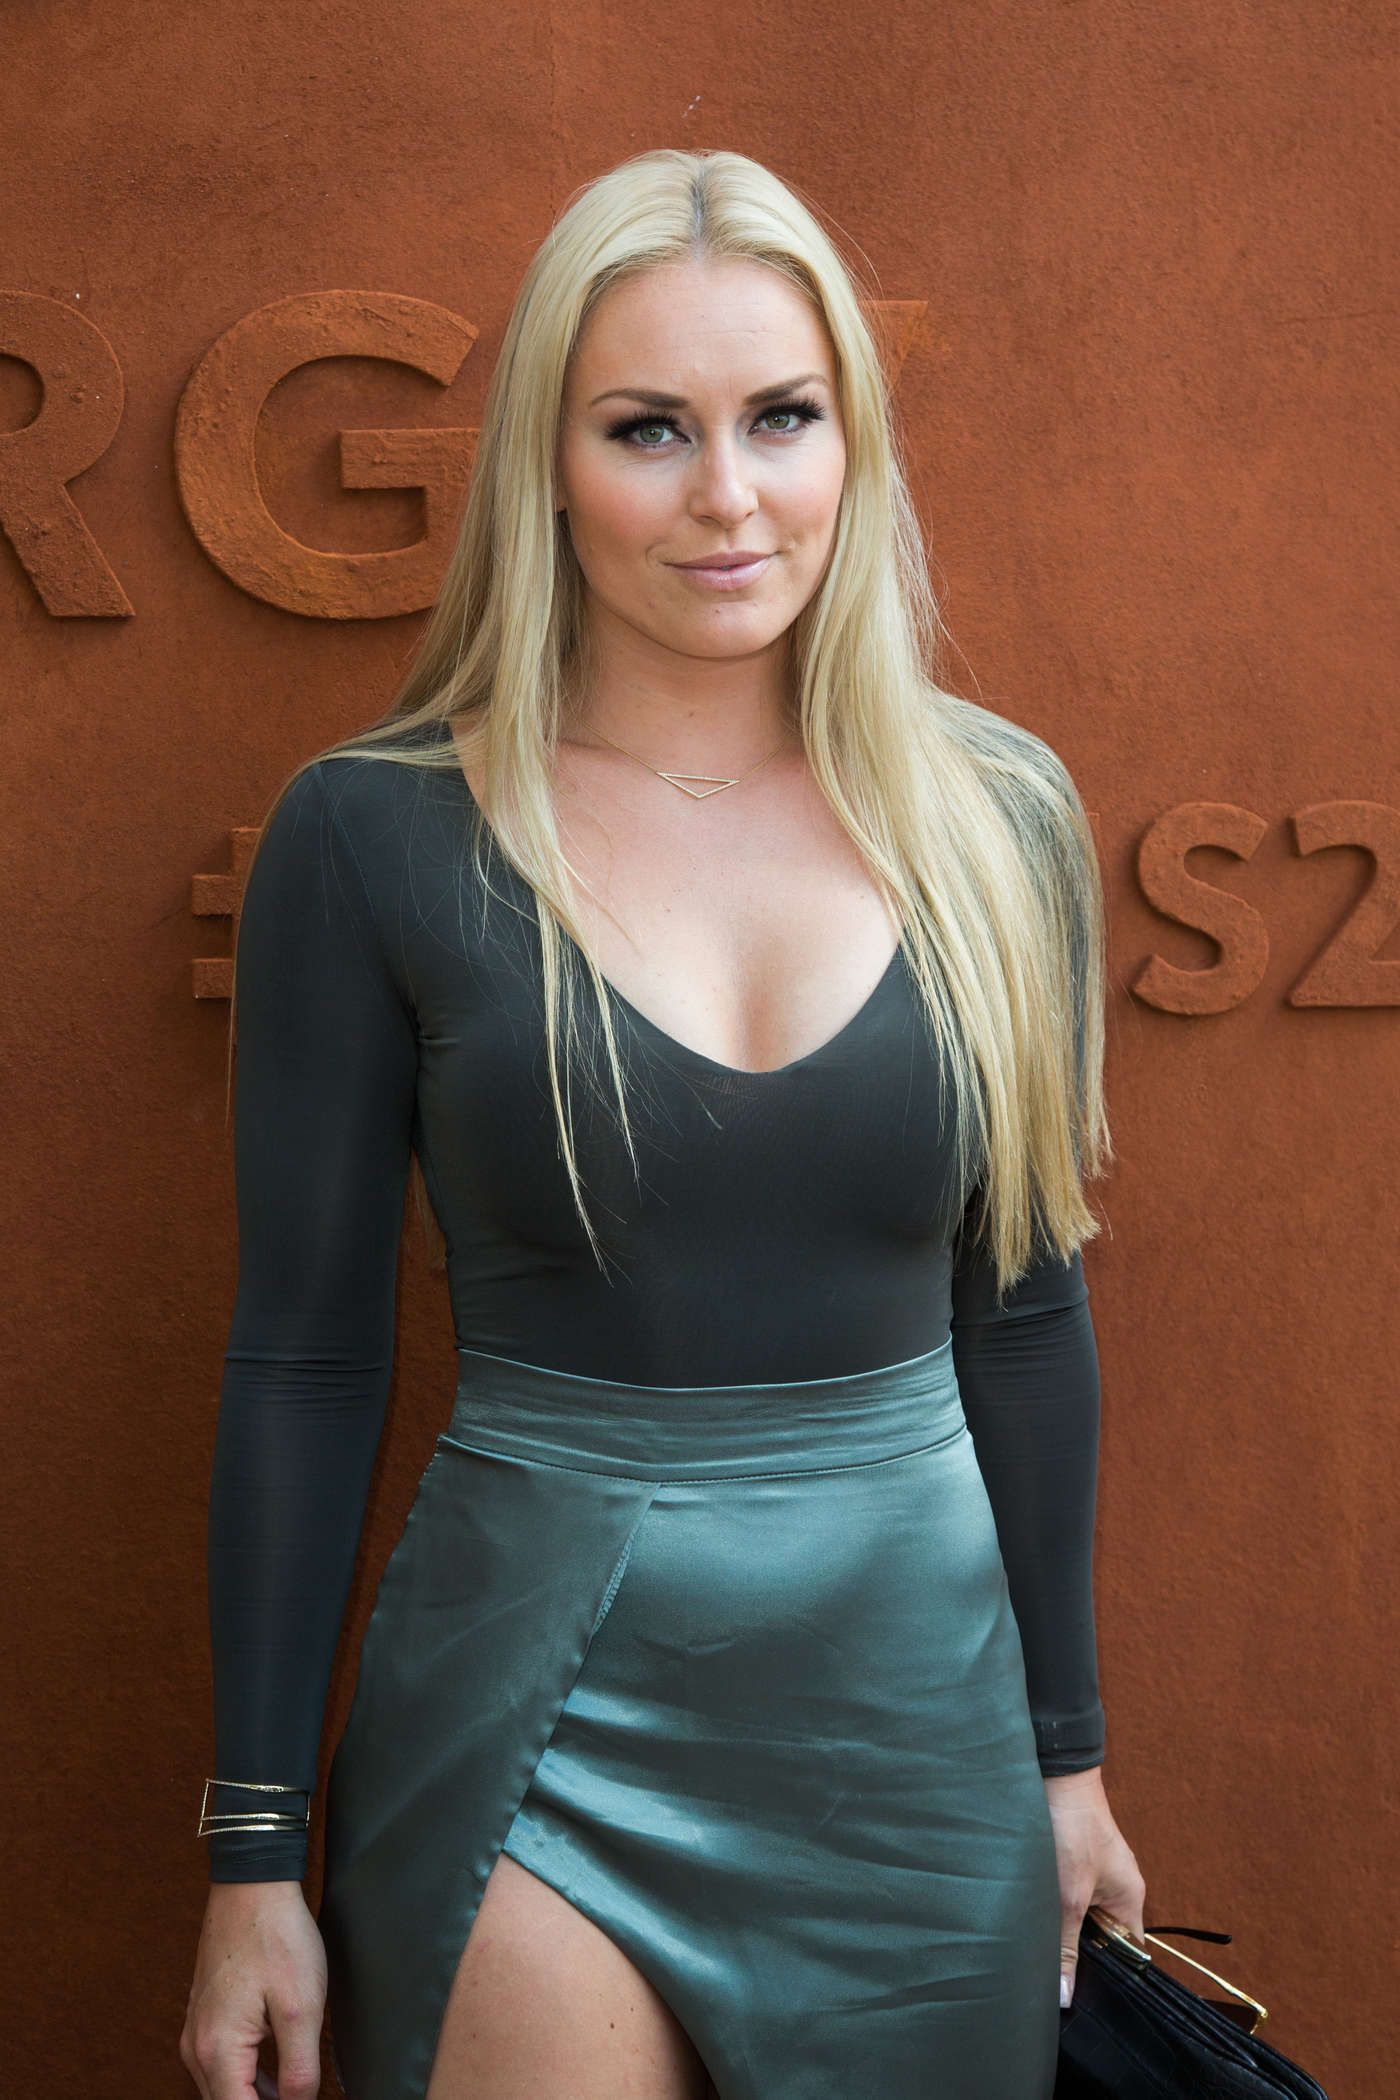 Cleavage Lindsey Vonn naked (66 photos), Pussy, Hot, Boobs, in bikini 2020